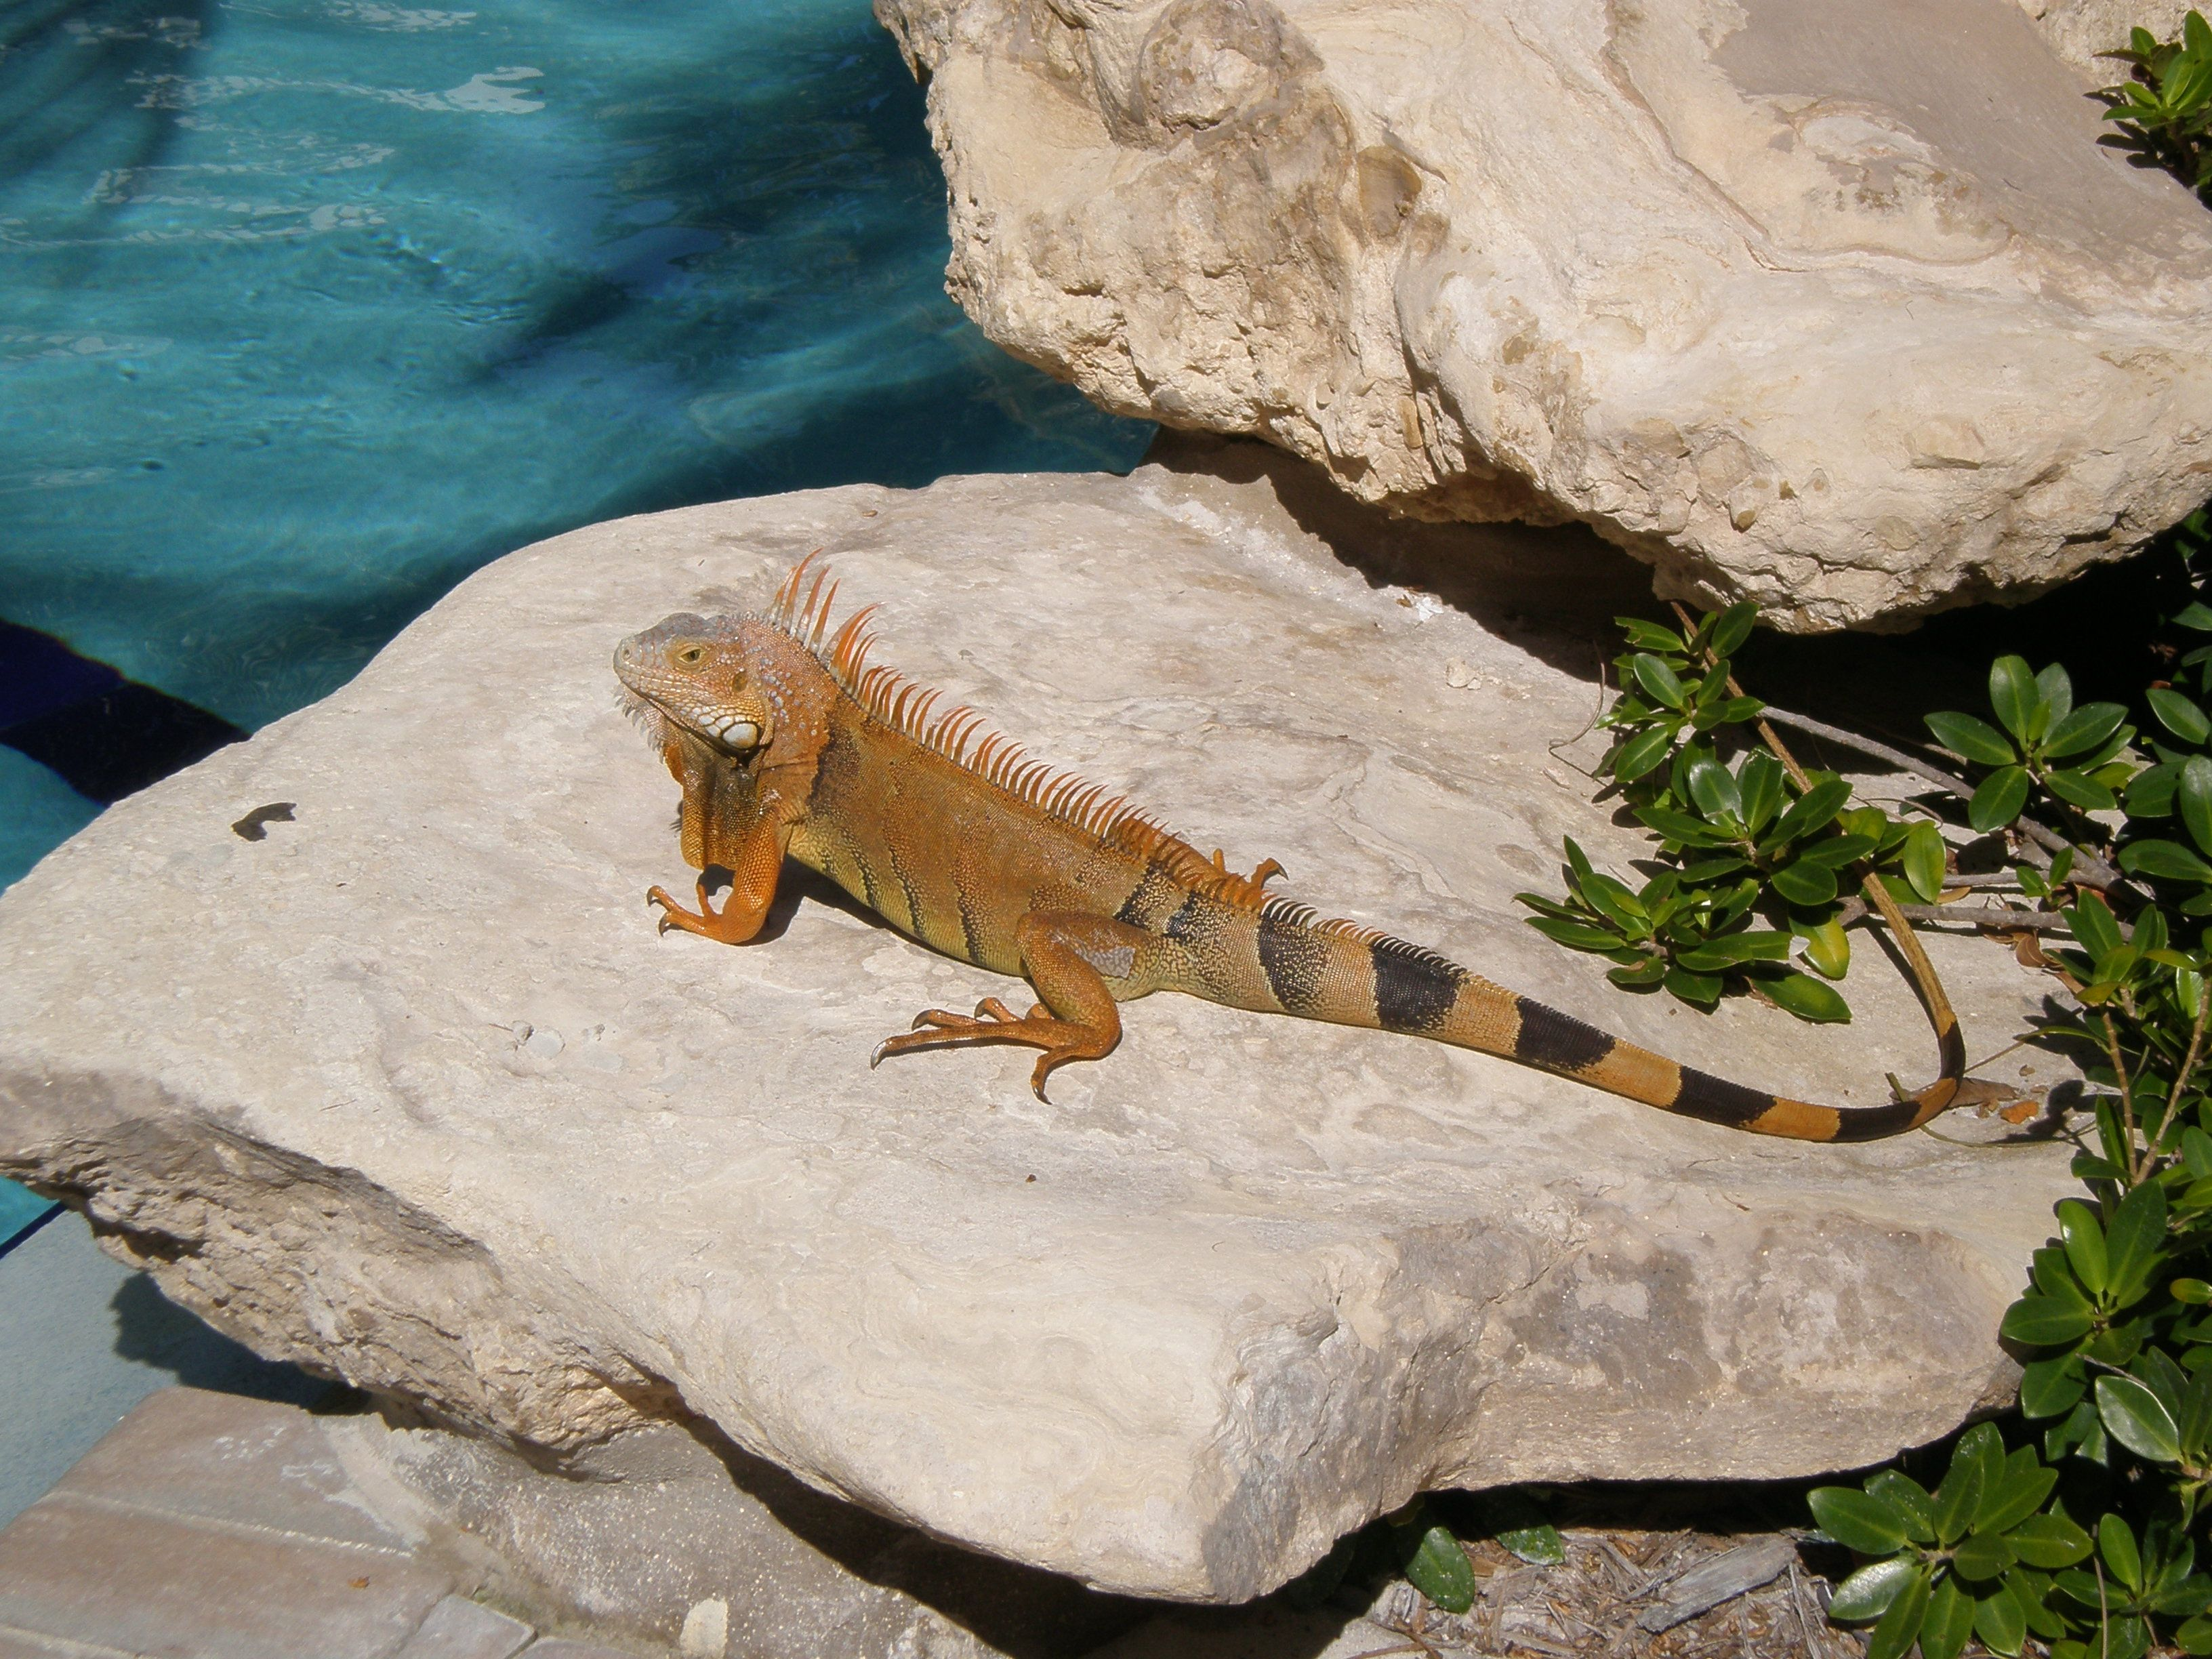 Just your friendly resident iguana at The Inn at Key West!